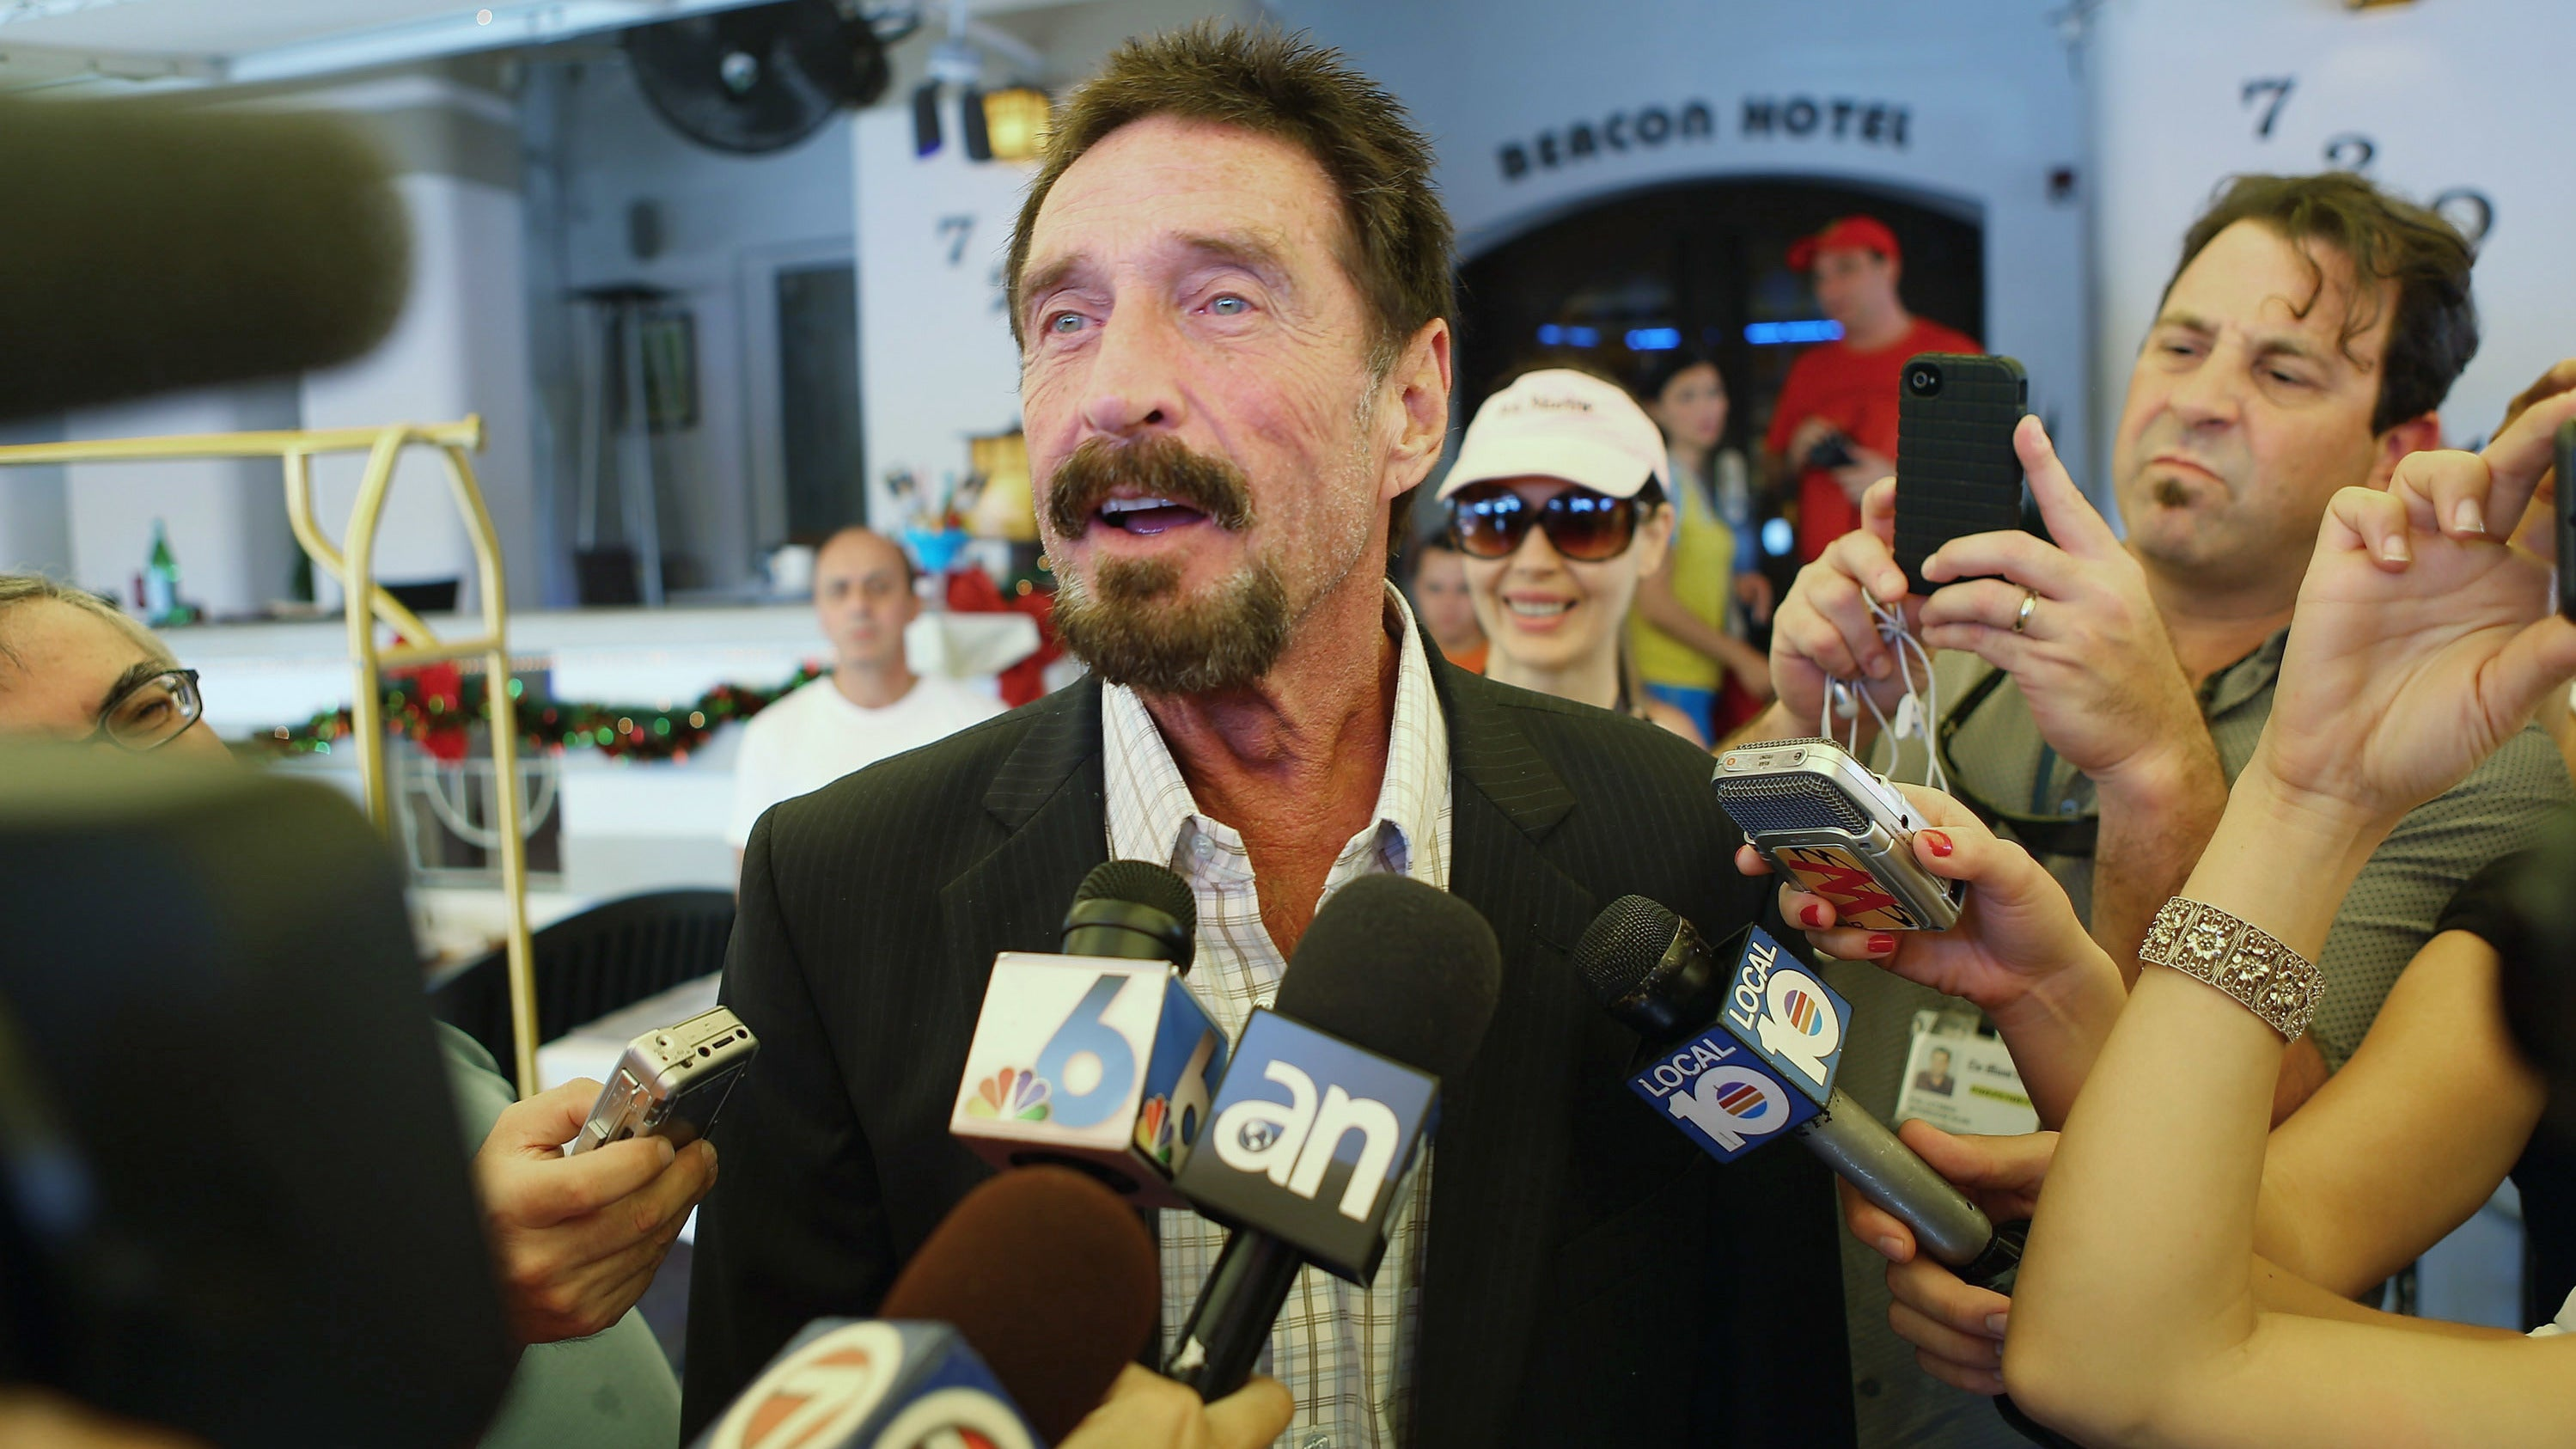 Hospitalized John McAfee Swears Wrath On Whoever Managed To 'Spike Something That I Ingested'